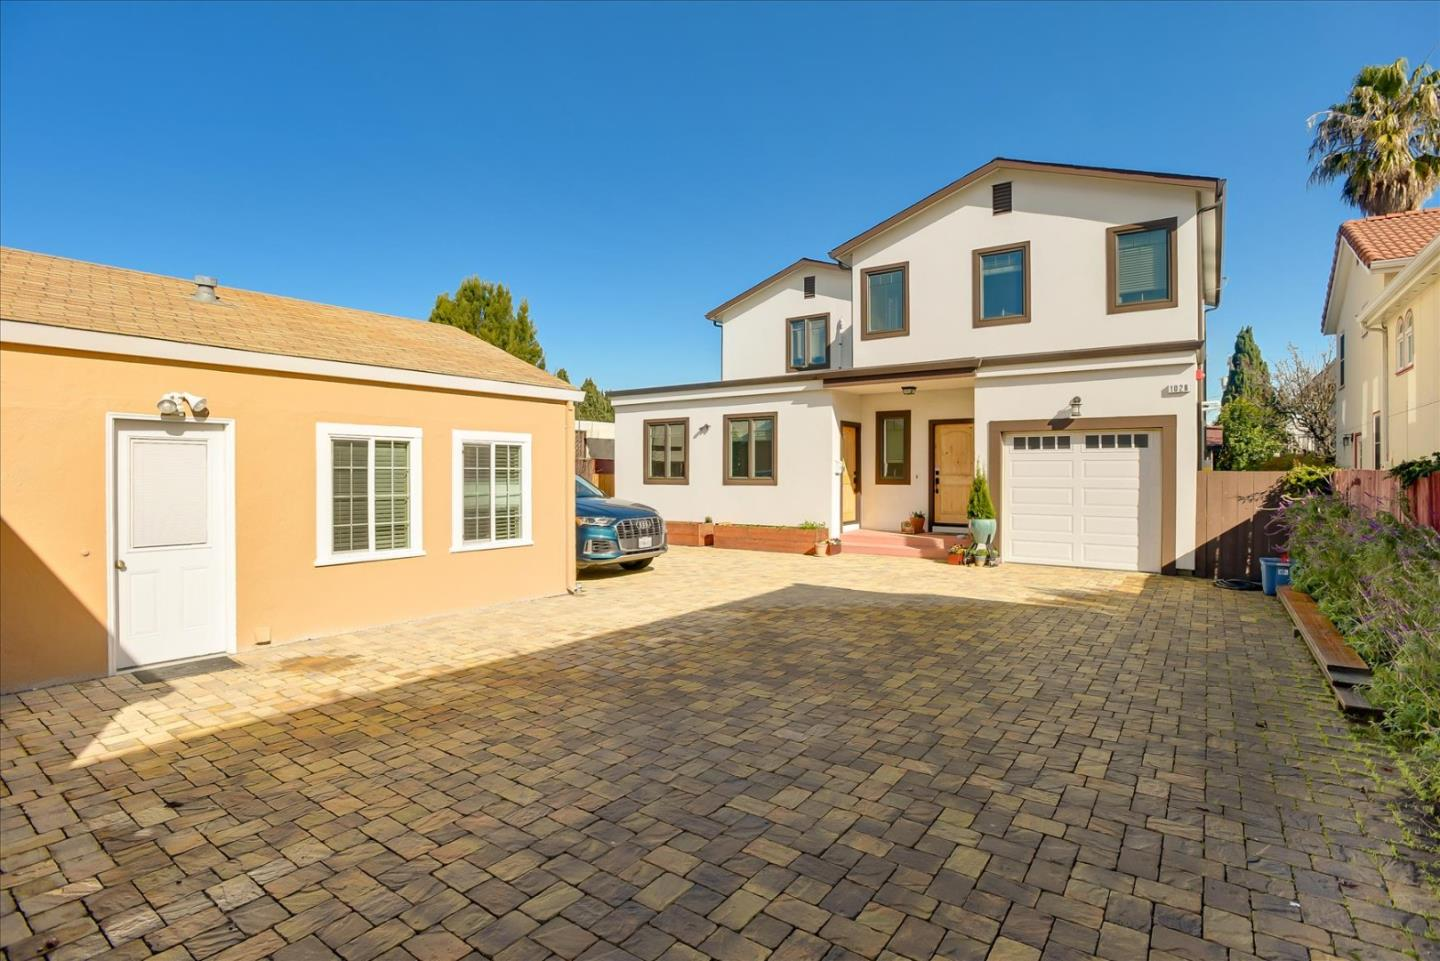 Detail Gallery Image 1 of 29 For 1026-1028 N. Humboldt, San Mateo,  CA 94401 - – Beds | – Baths